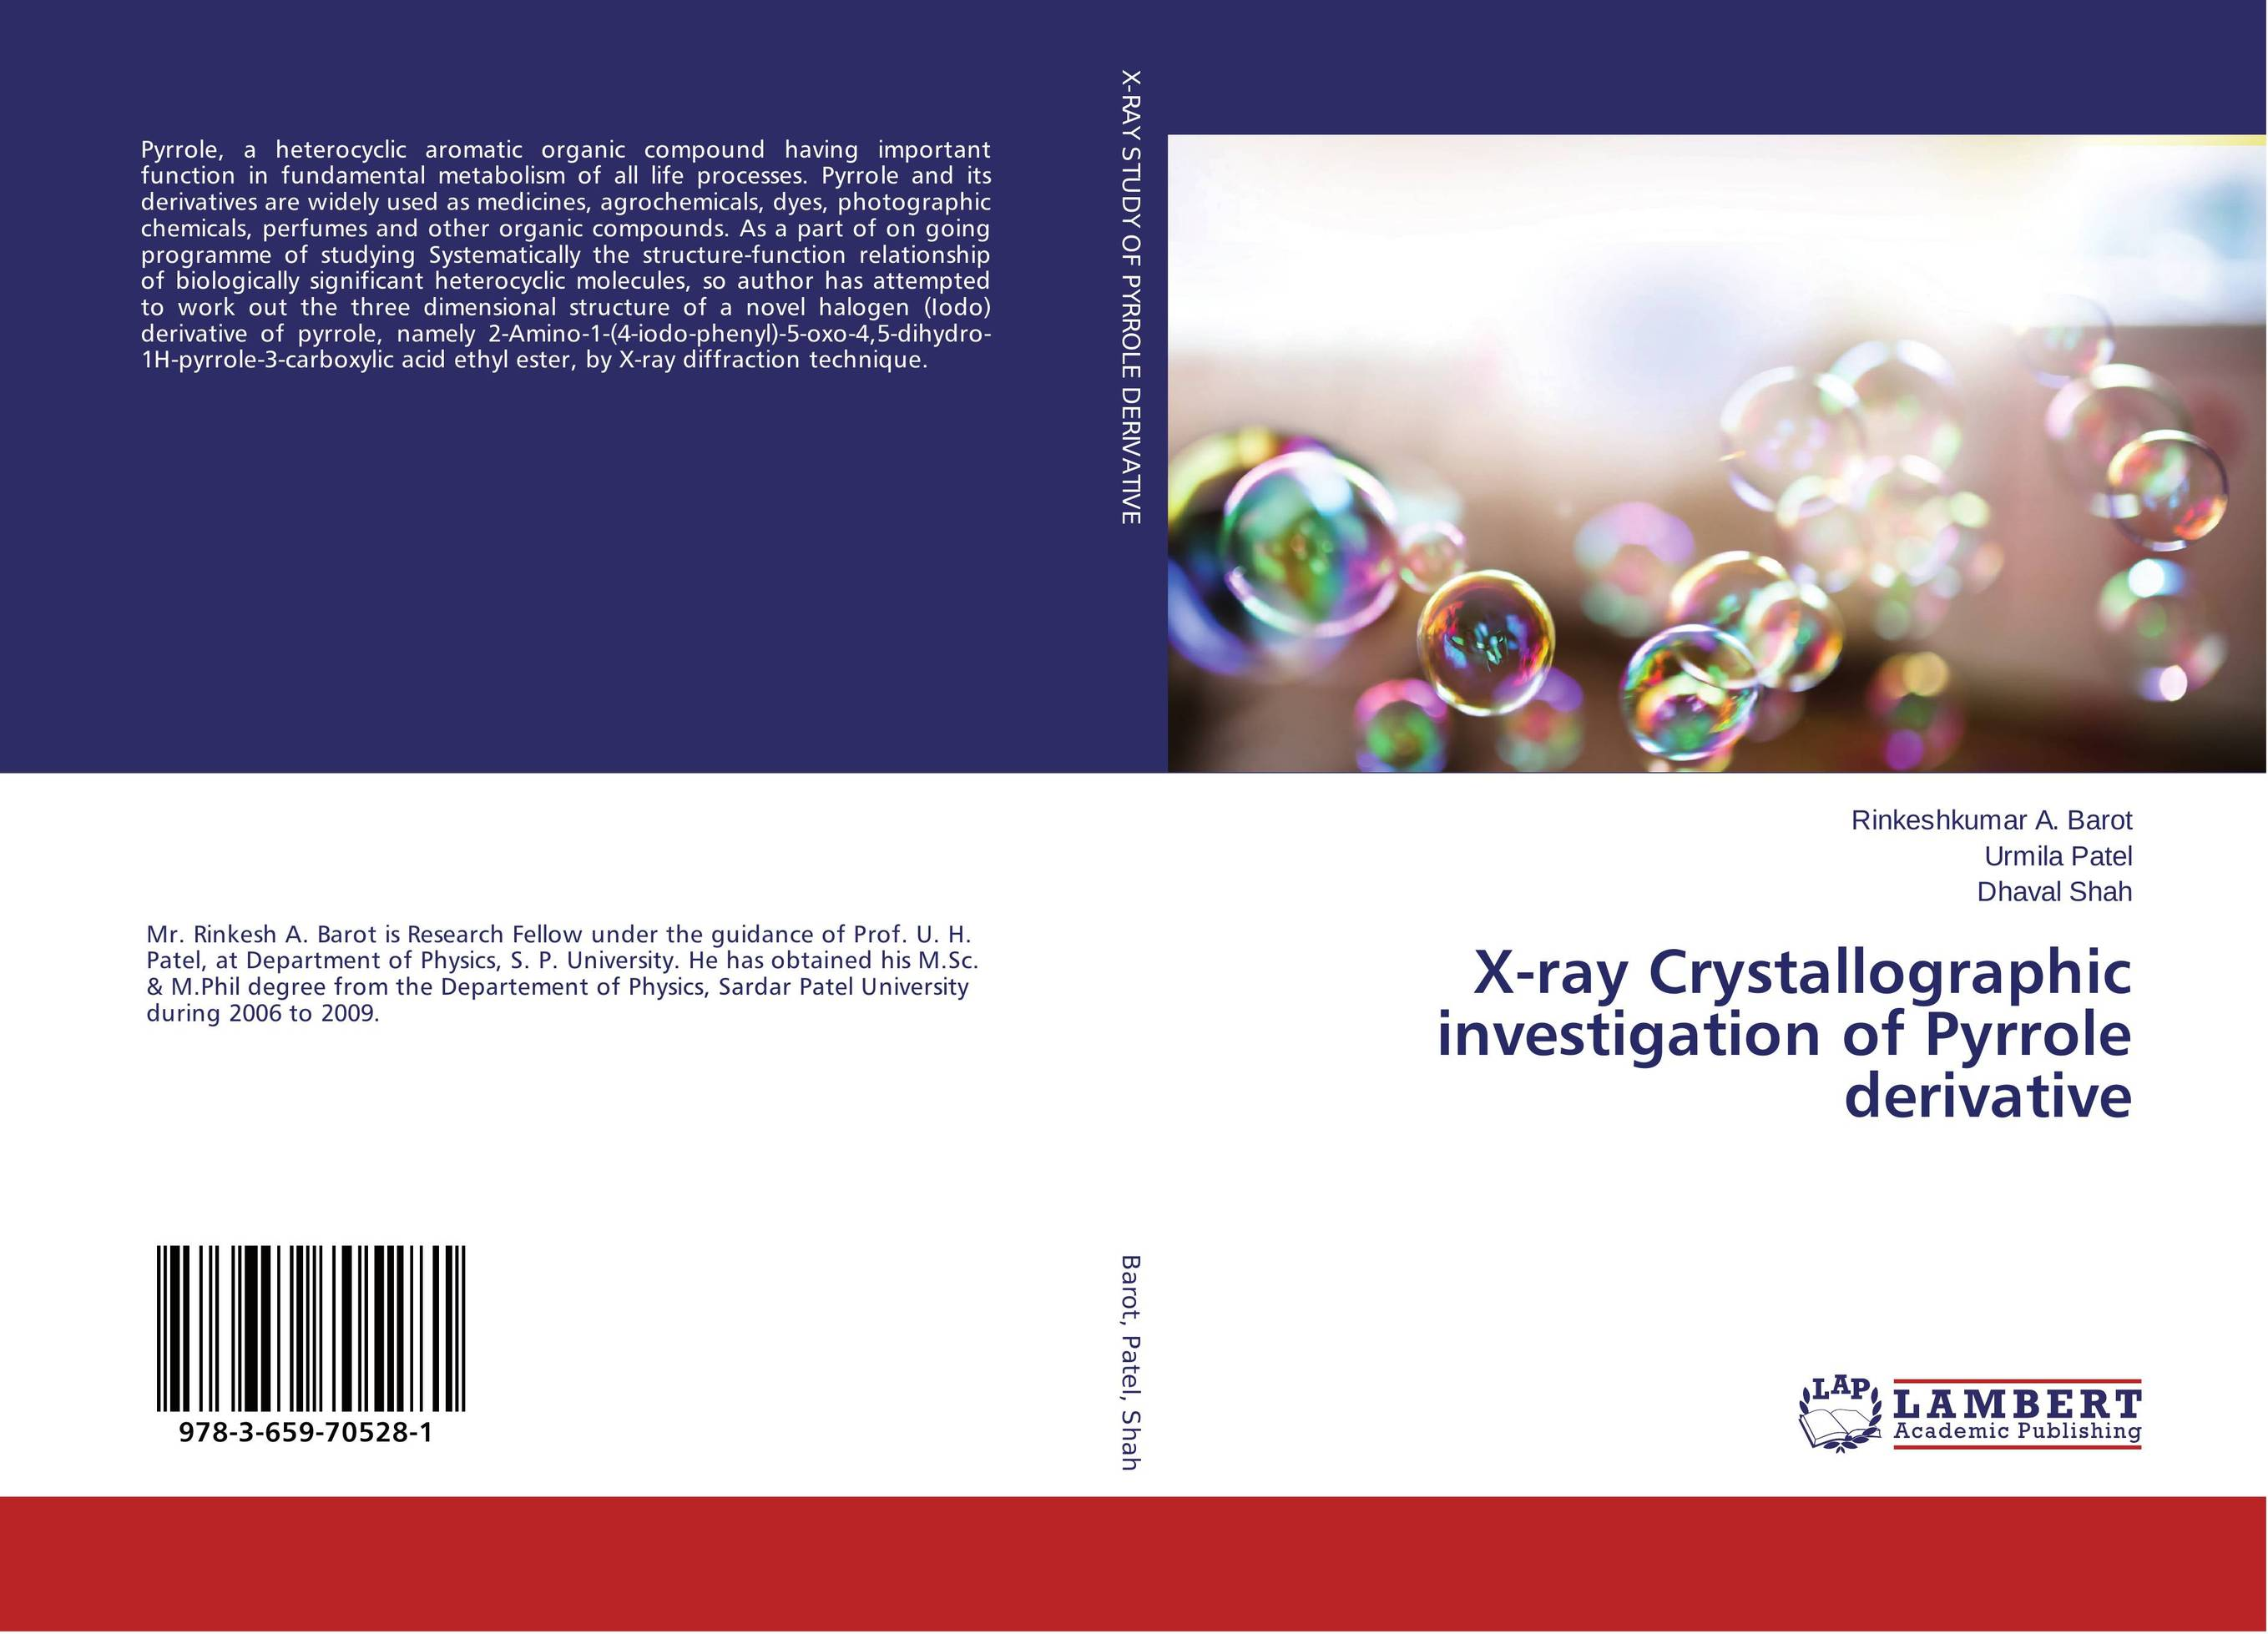 X-ray Crystallographic investigation of Pyrrole derivative x ray crystallographic and theoretical investigations on aromatic compounds